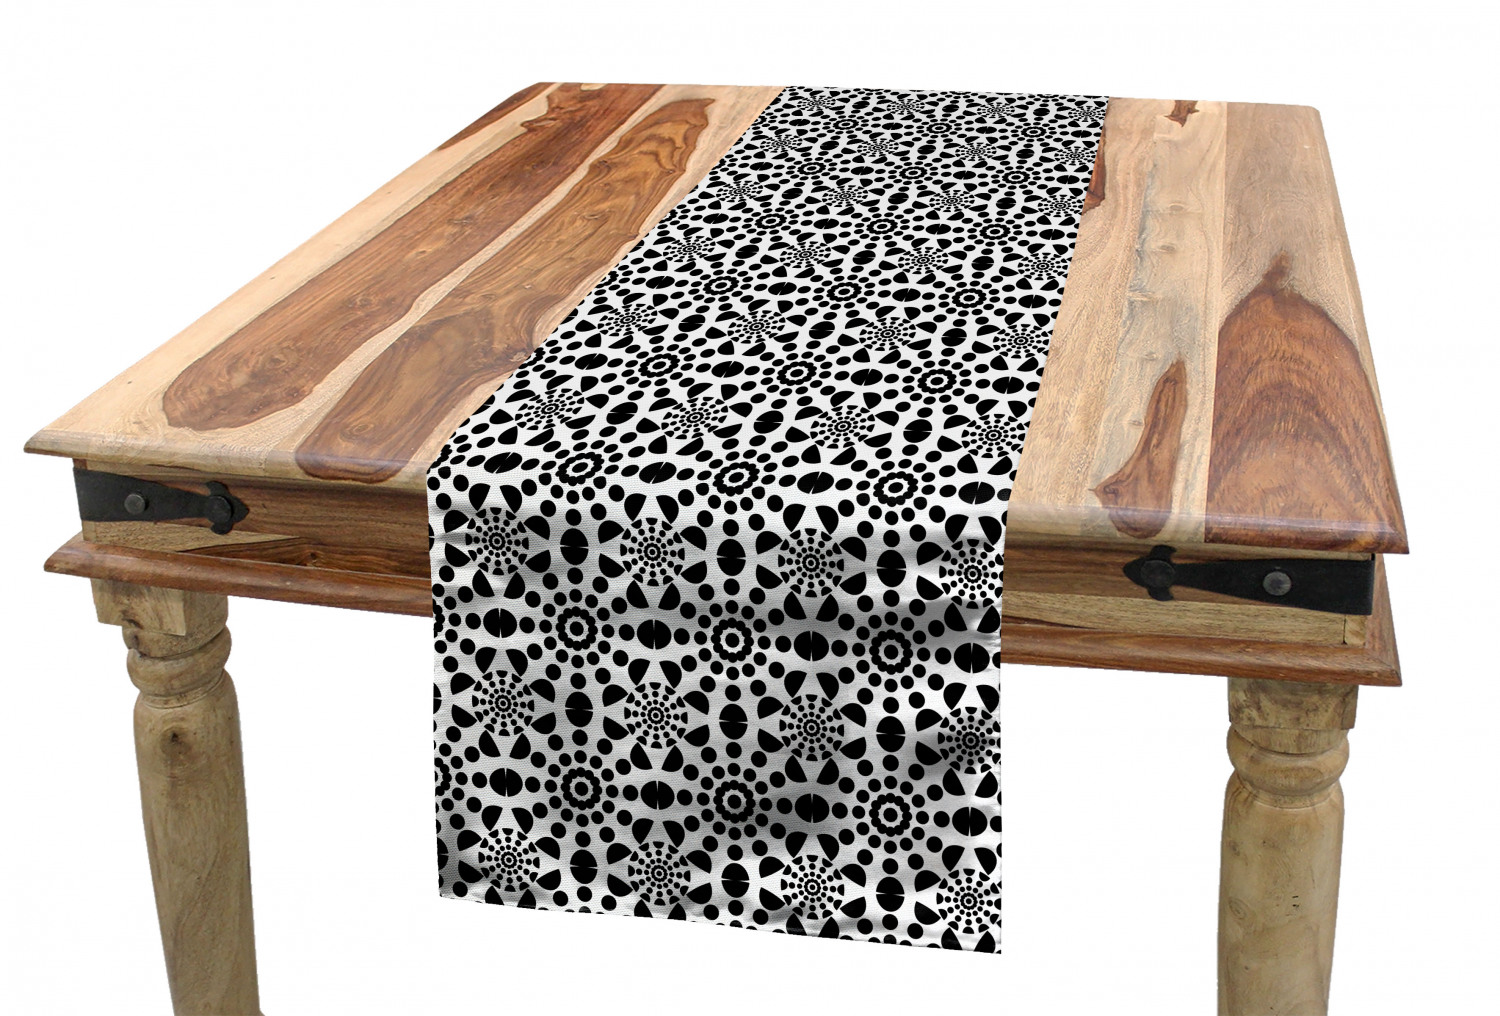 Picture of: Abstract Table Runner Contemporary Design Of Half Circles And Polka Dots Forming Round Dining Room Kitchen Rectangular Runner 3 Sizes By Ambesonne Walmart Com Walmart Com